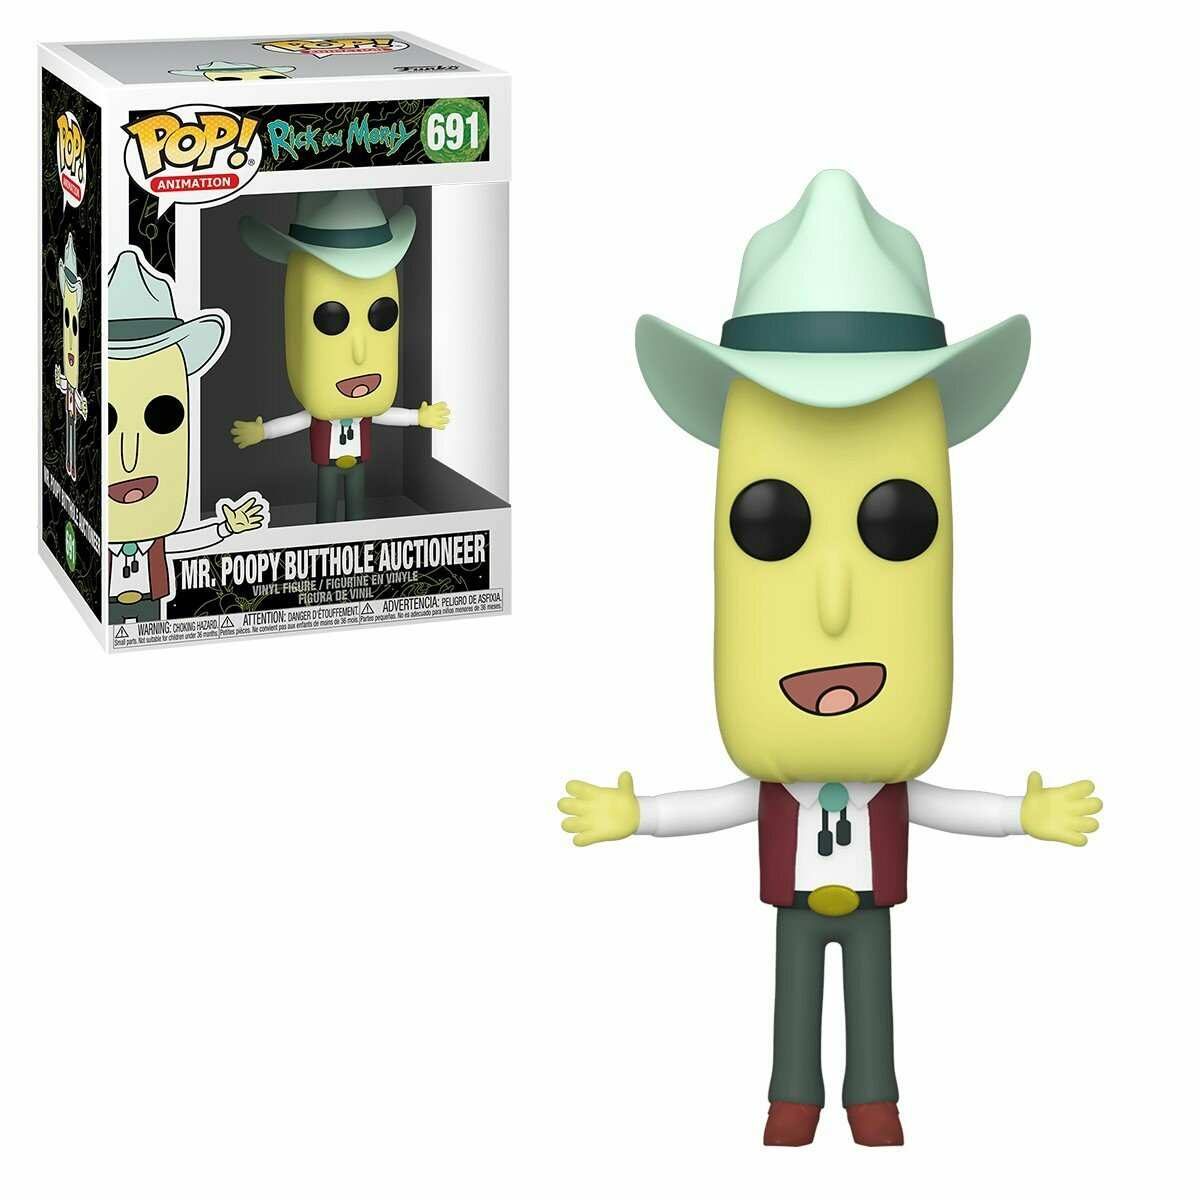 Rick and Morty Mr. Poopy Butthole Auctioneer Pop! Vinyl Figure